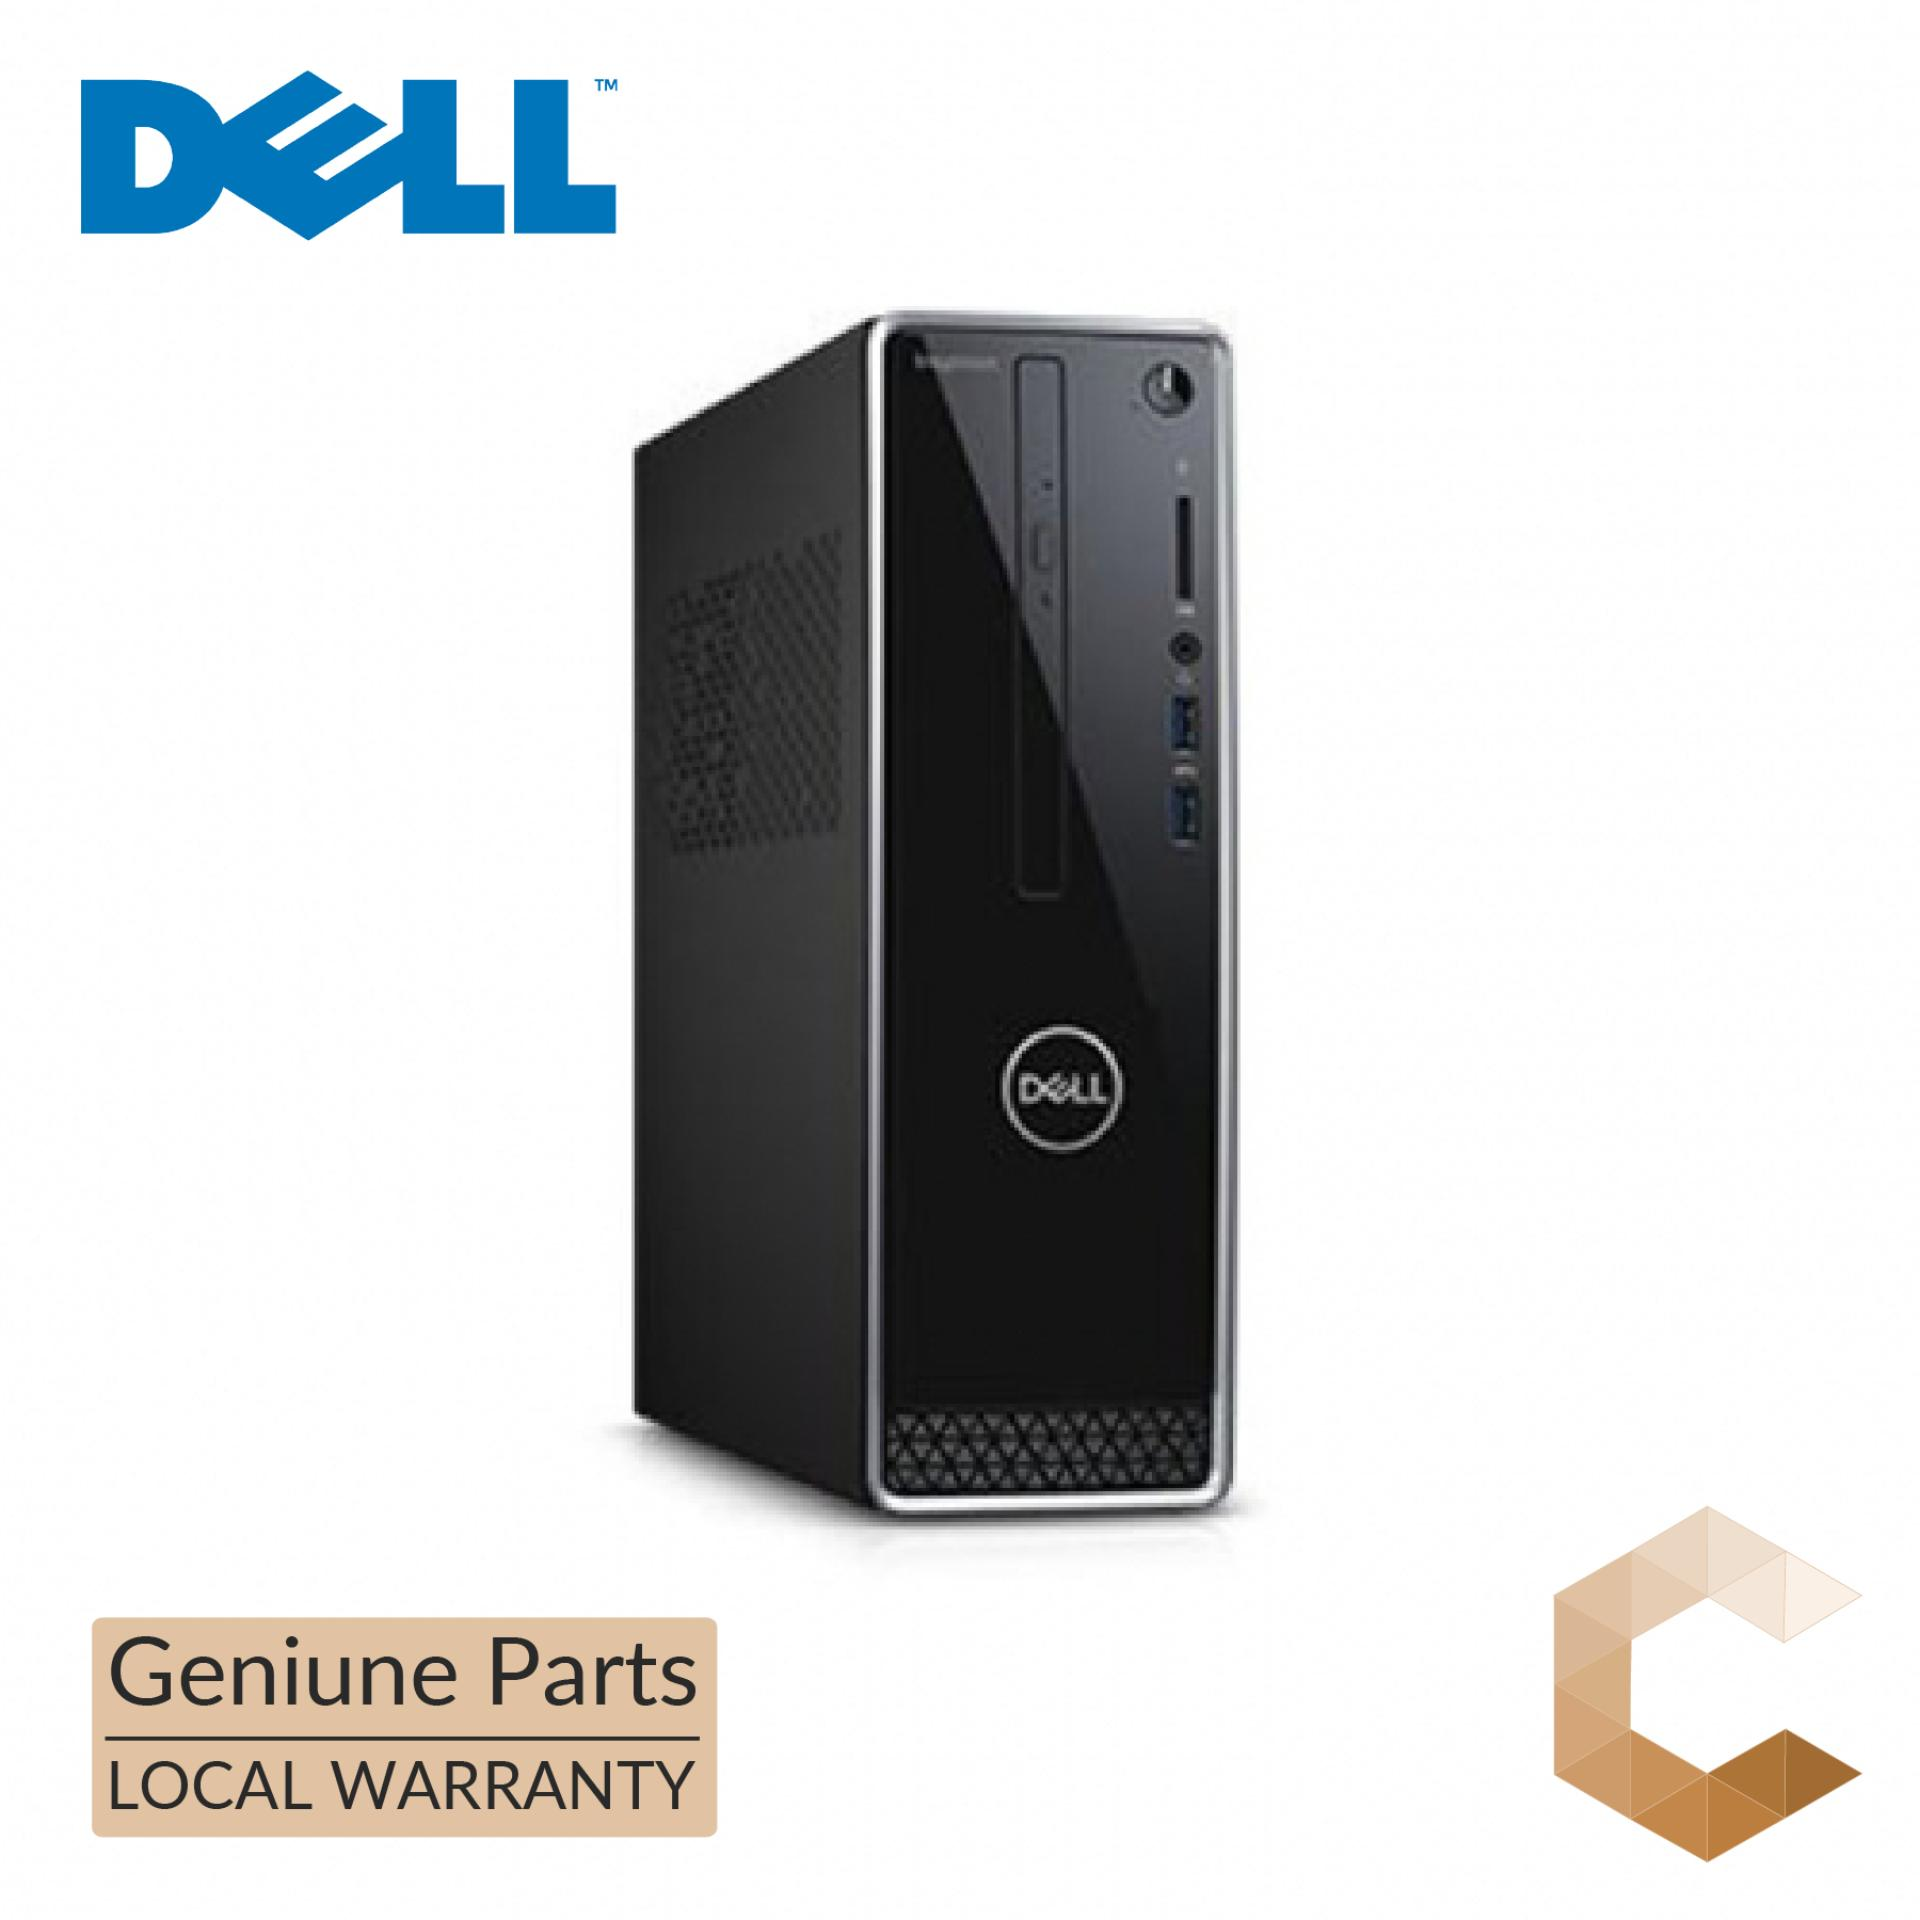 DELL DESKTOP | 3470-840812G-W10